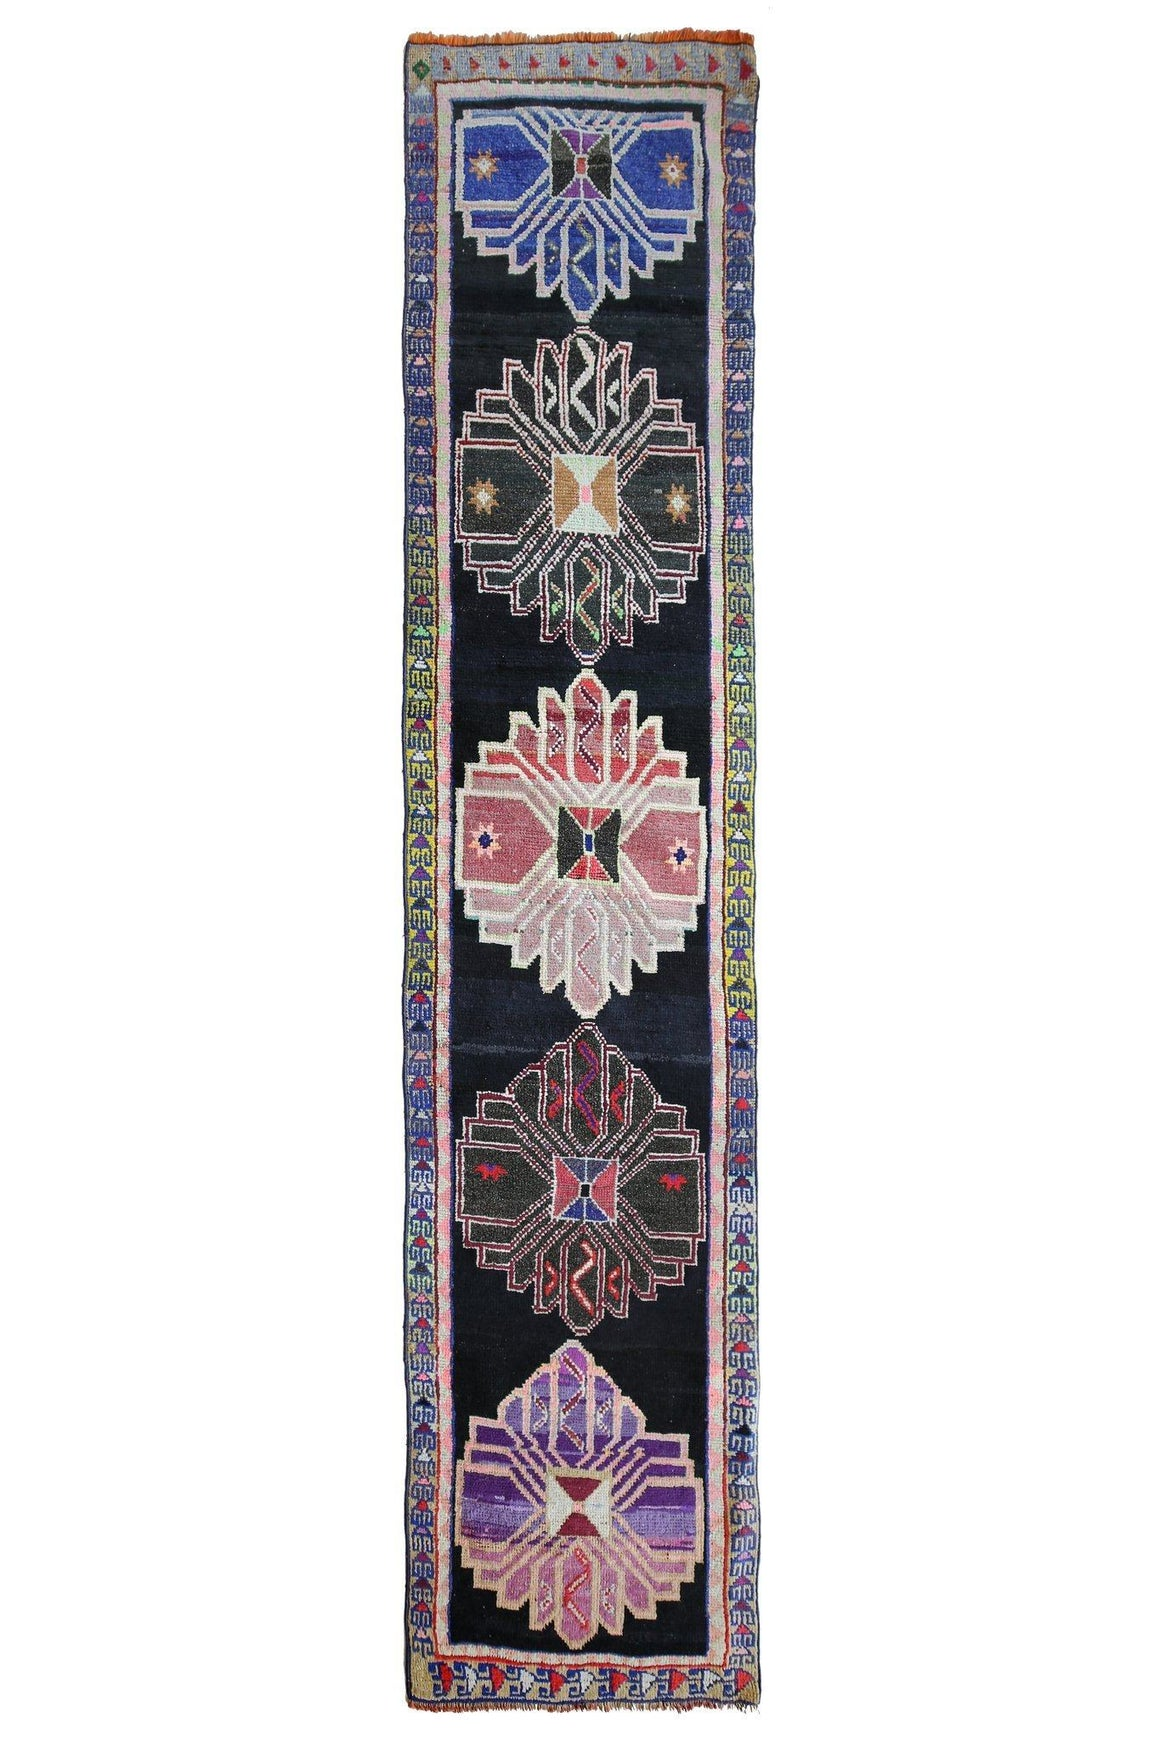 'Summer Festival' Tribal Runner Rug - Canary Lane - Curated Textiles